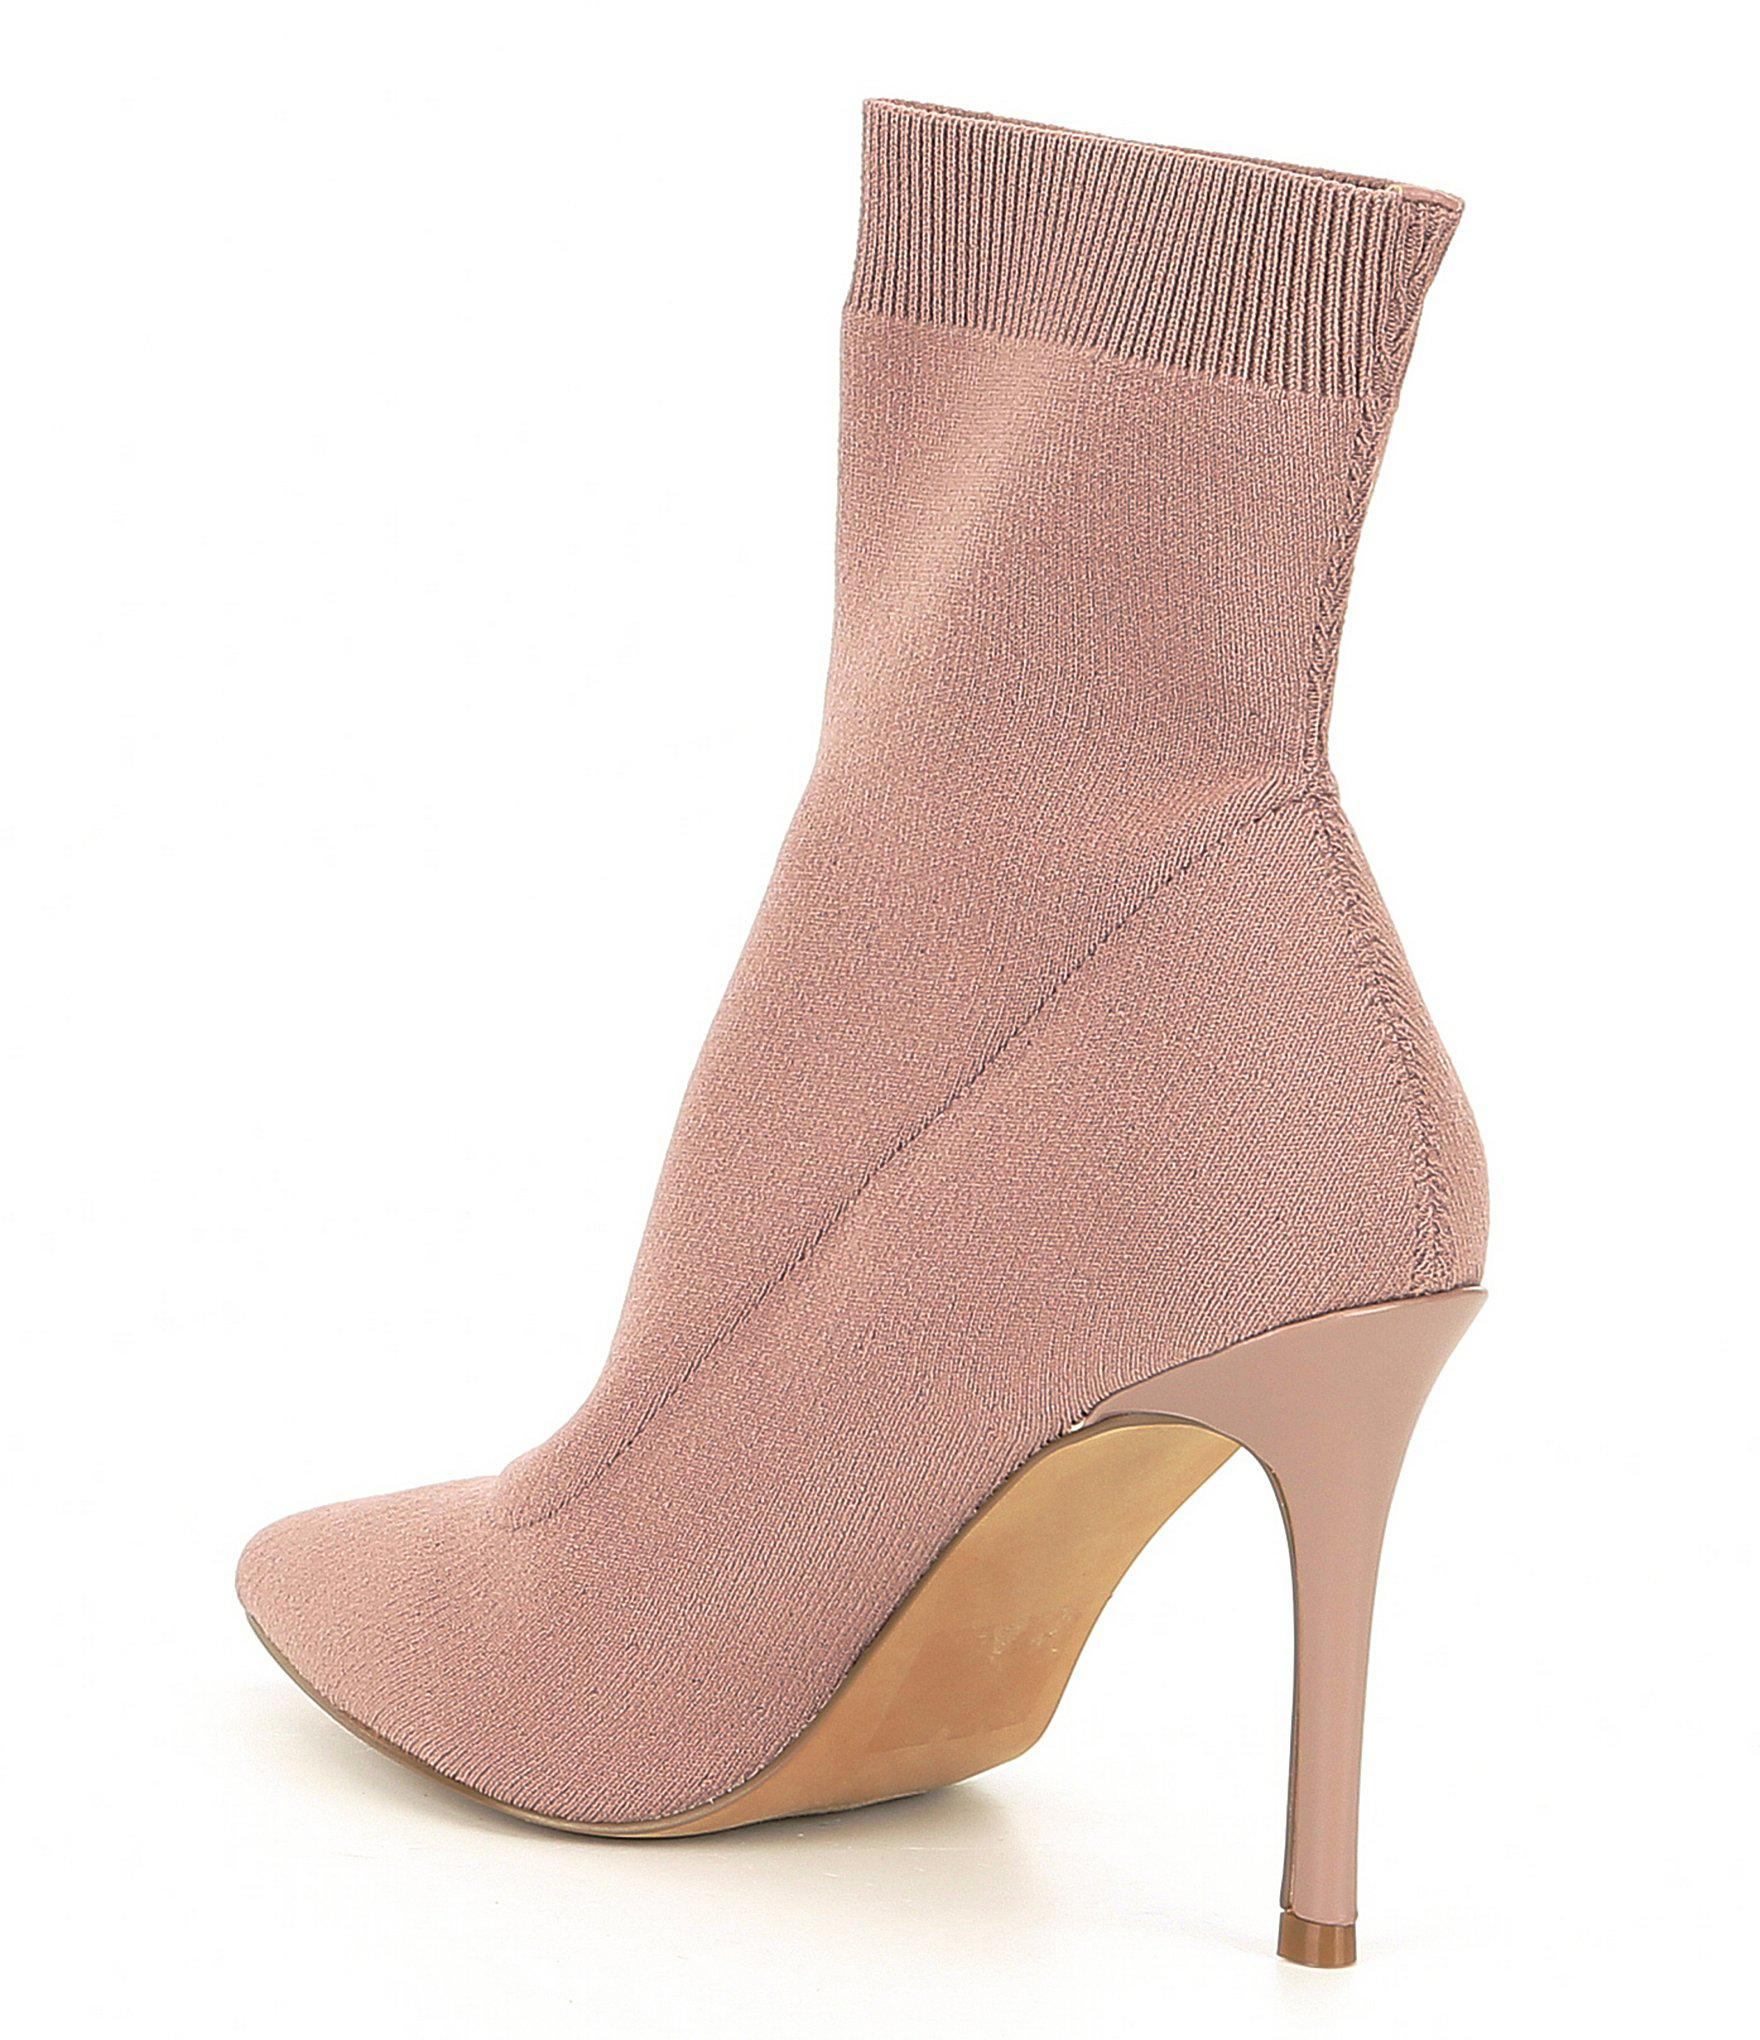 2ebddf052d8 Lyst - Steve Madden Claire Knit Stiletto Booties